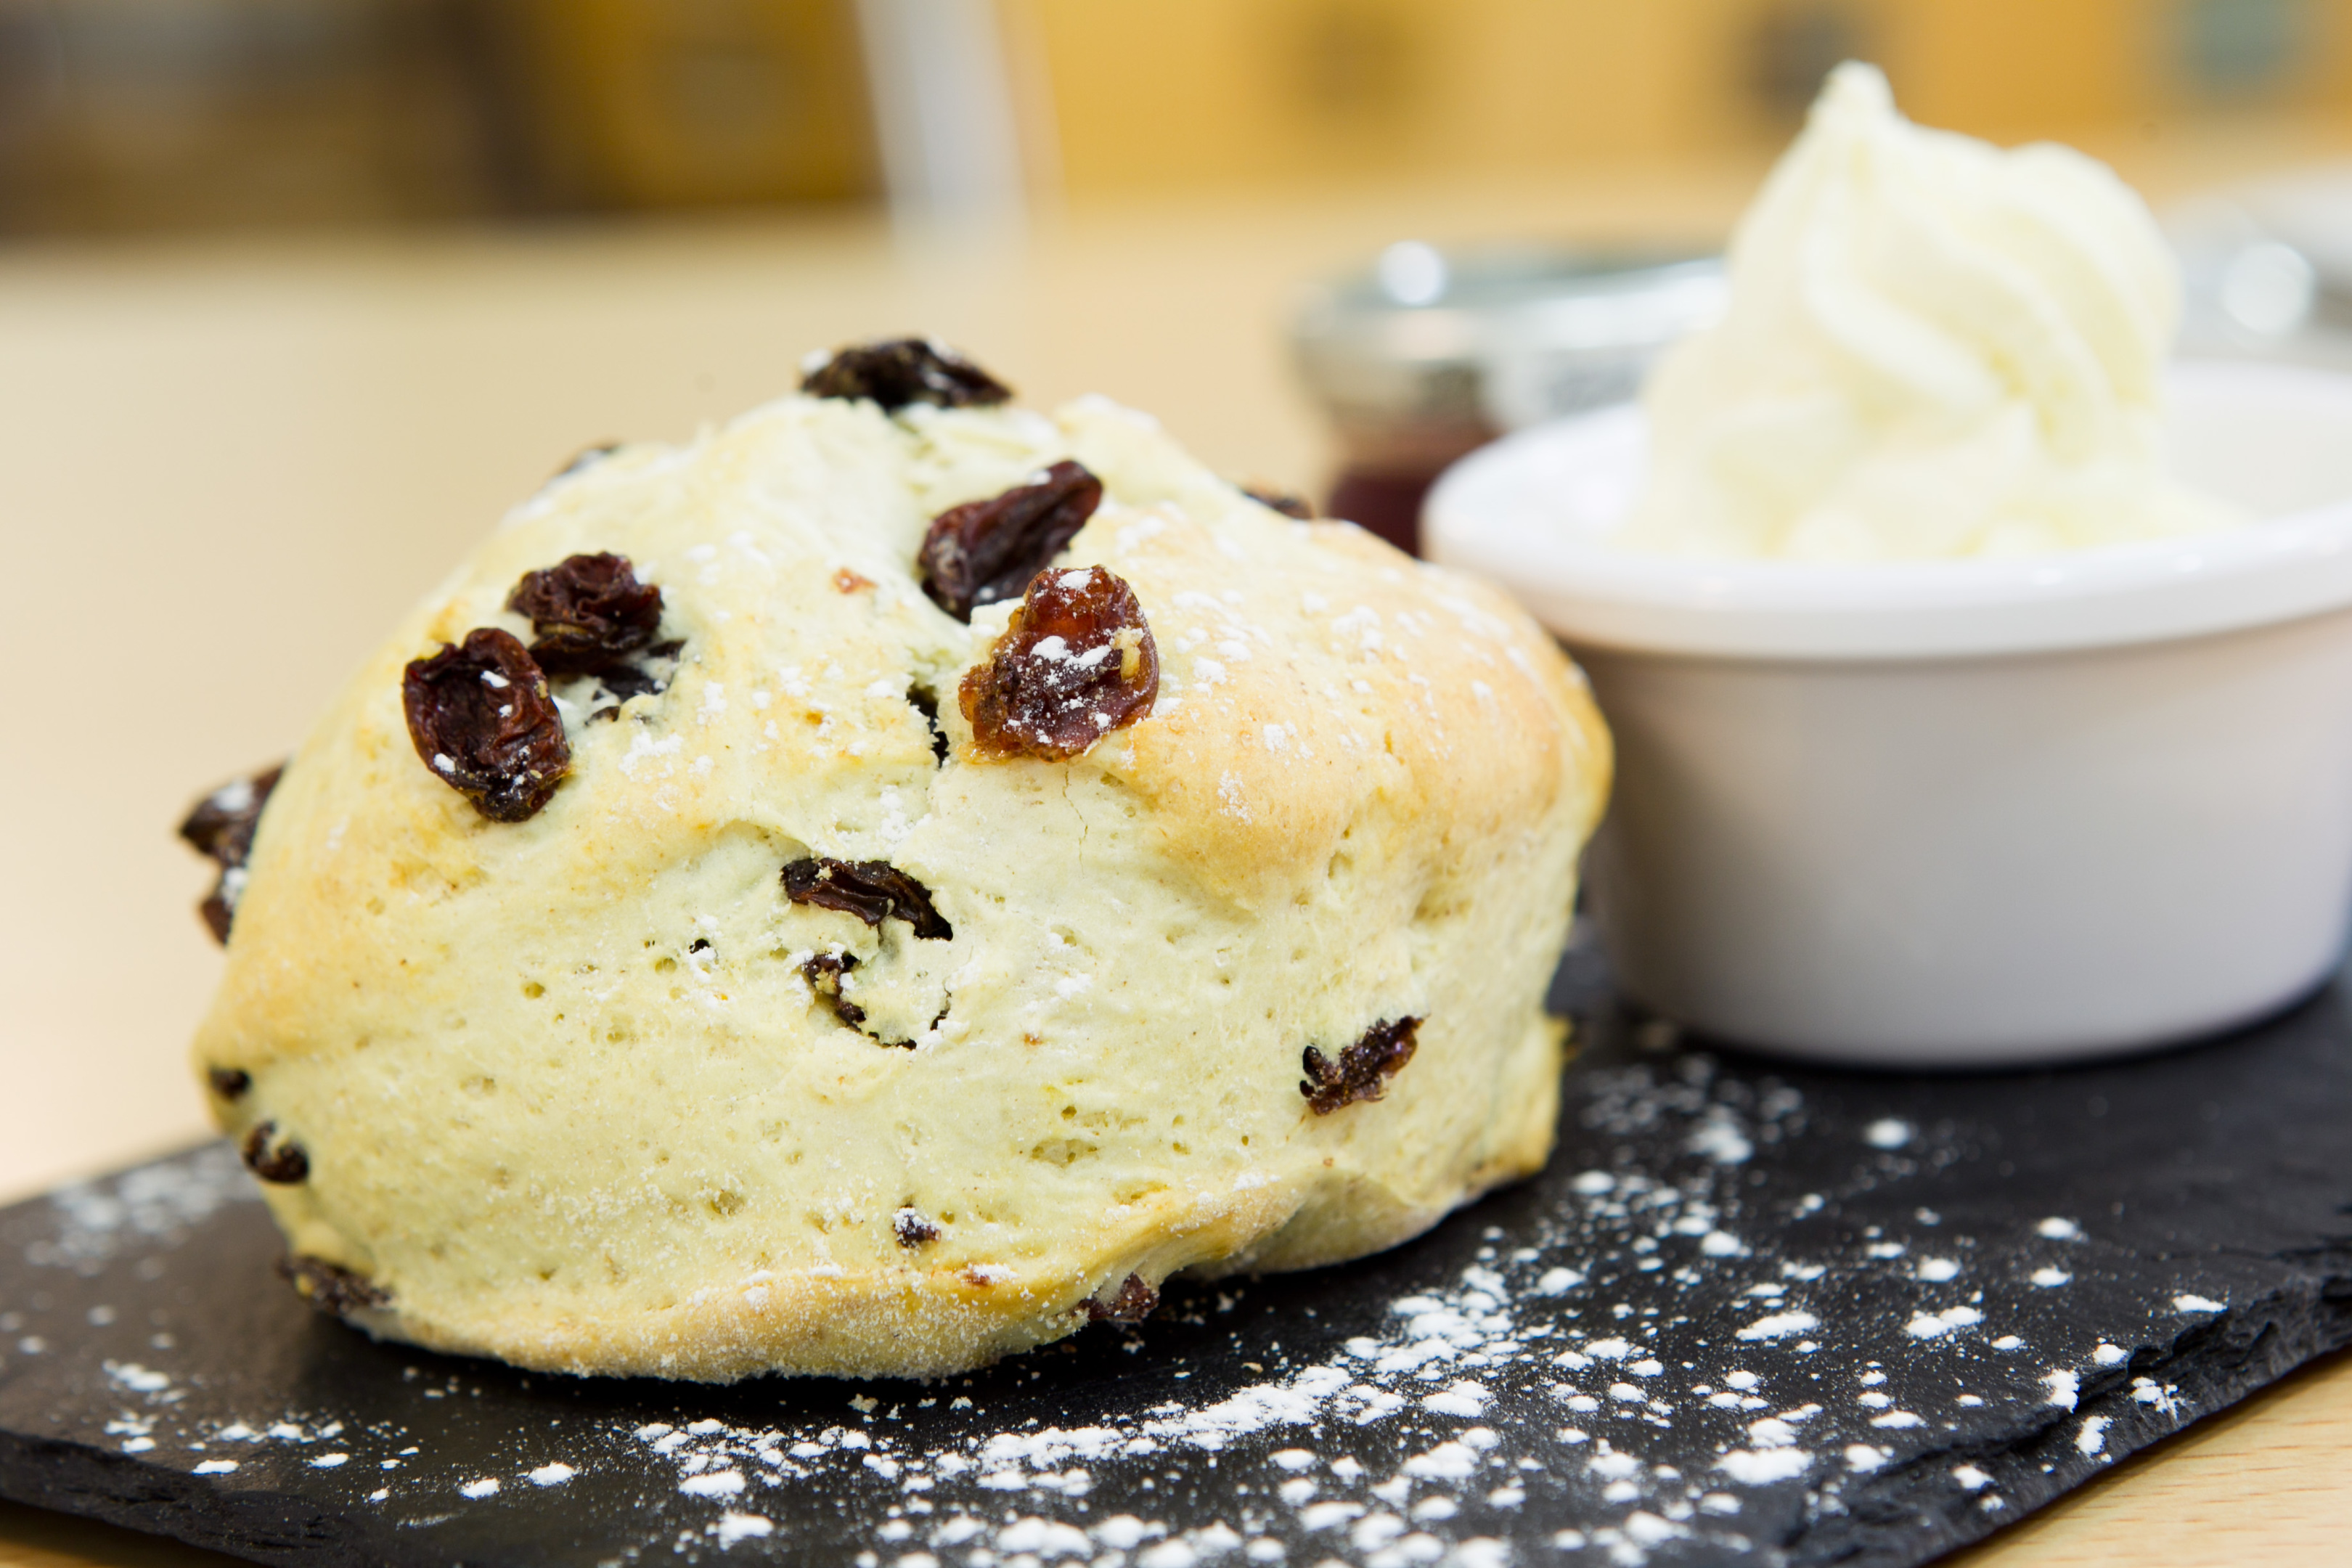 A scone from the Topiary Coffee Shop at Klondyke Garden Centre in Livingston (Andrew Cawley/DC Thomson)